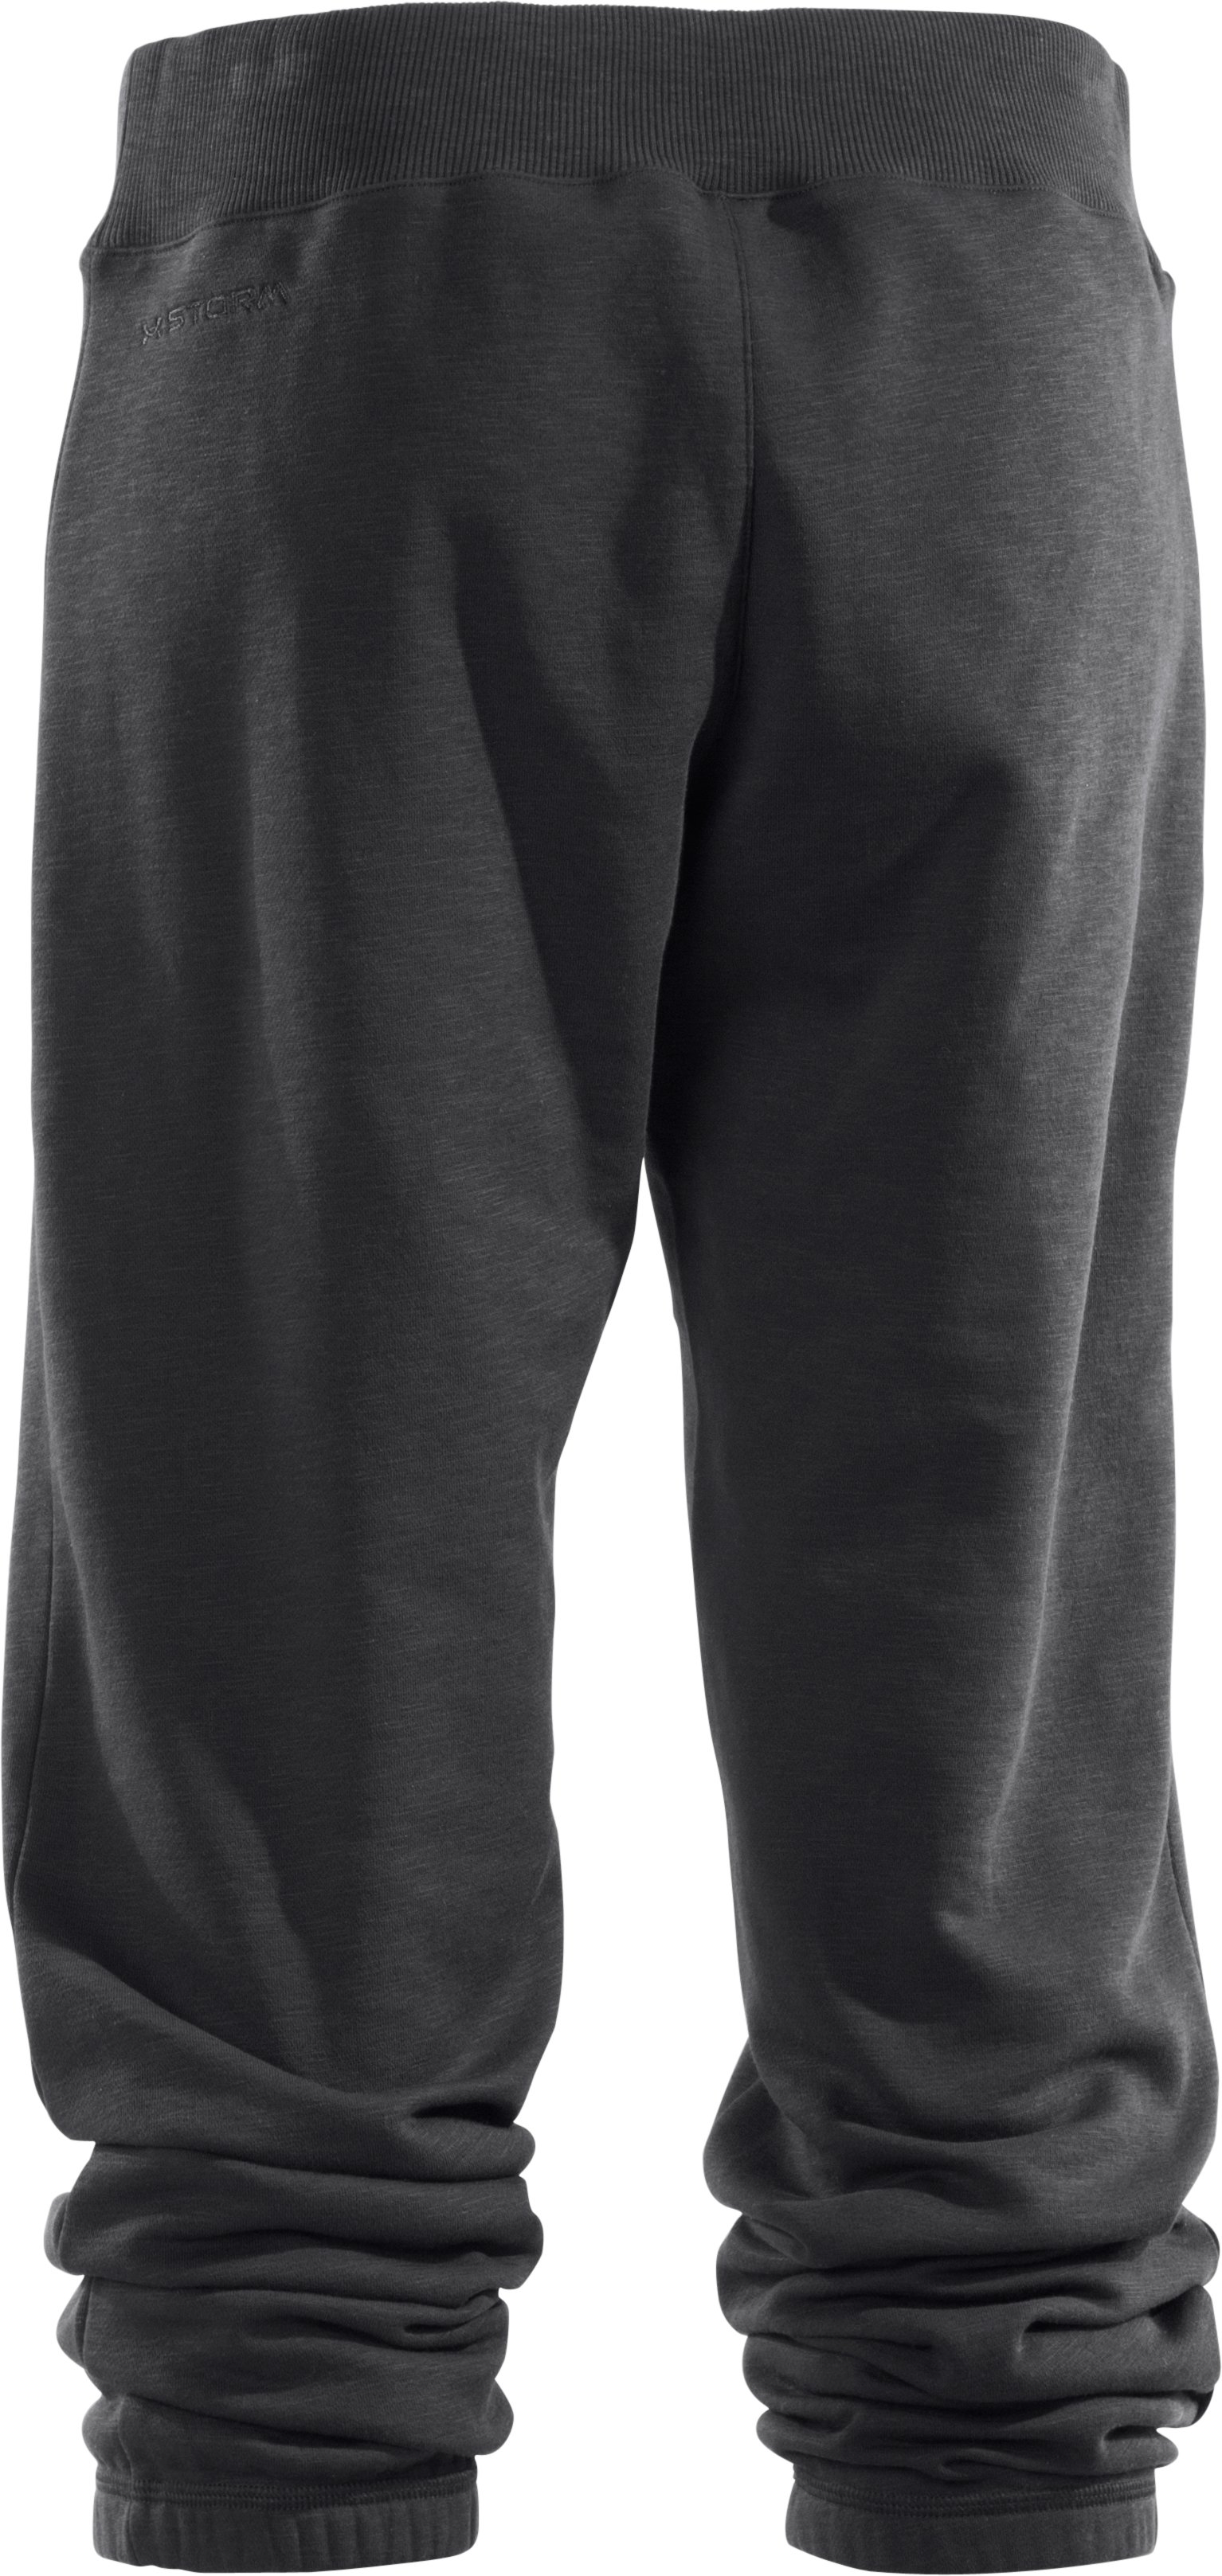 Women's Charged Cotton® Storm Slub Pants, Graphite